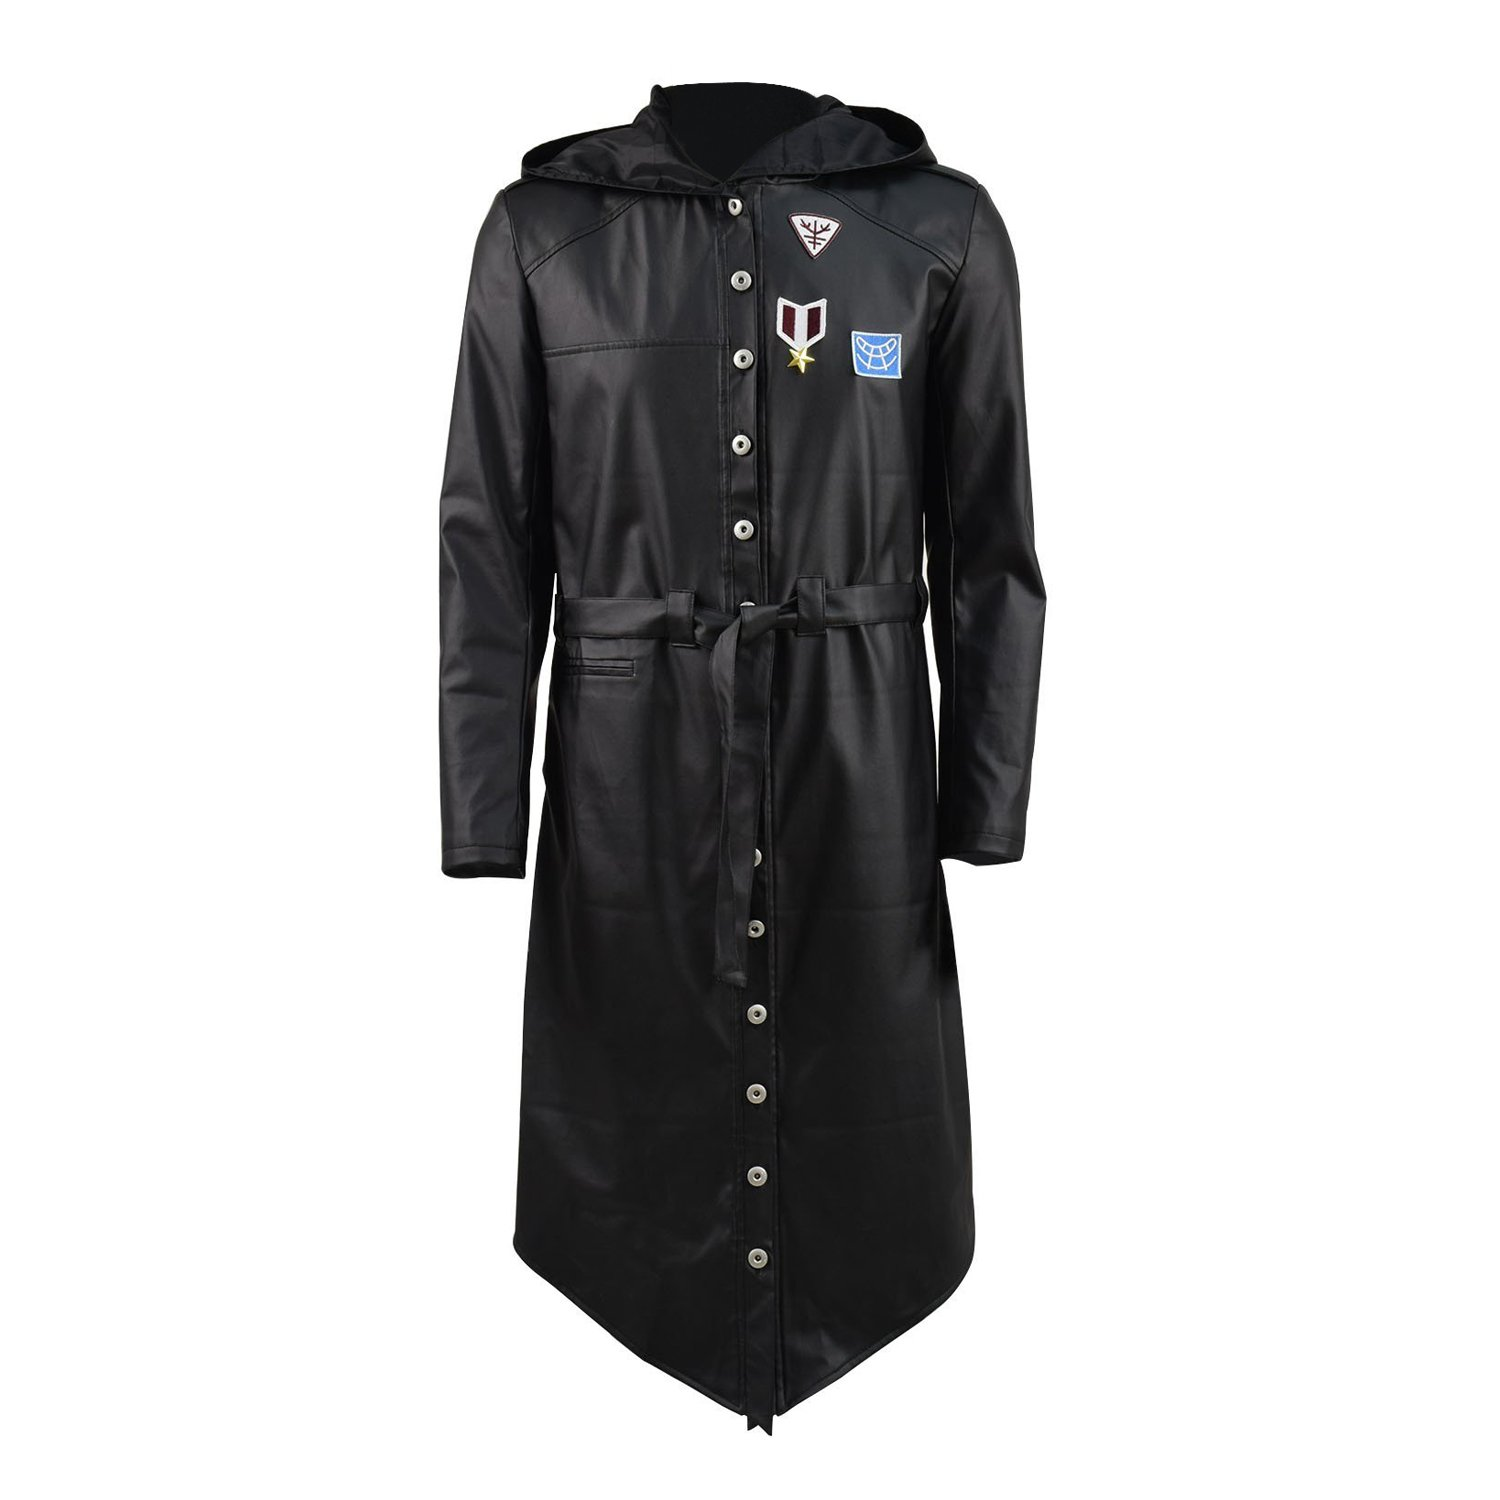 TISEA PUBG Mens Wind Coat Jacket and Cosplay Costume Accessories (US XS, Black Leather Coat)